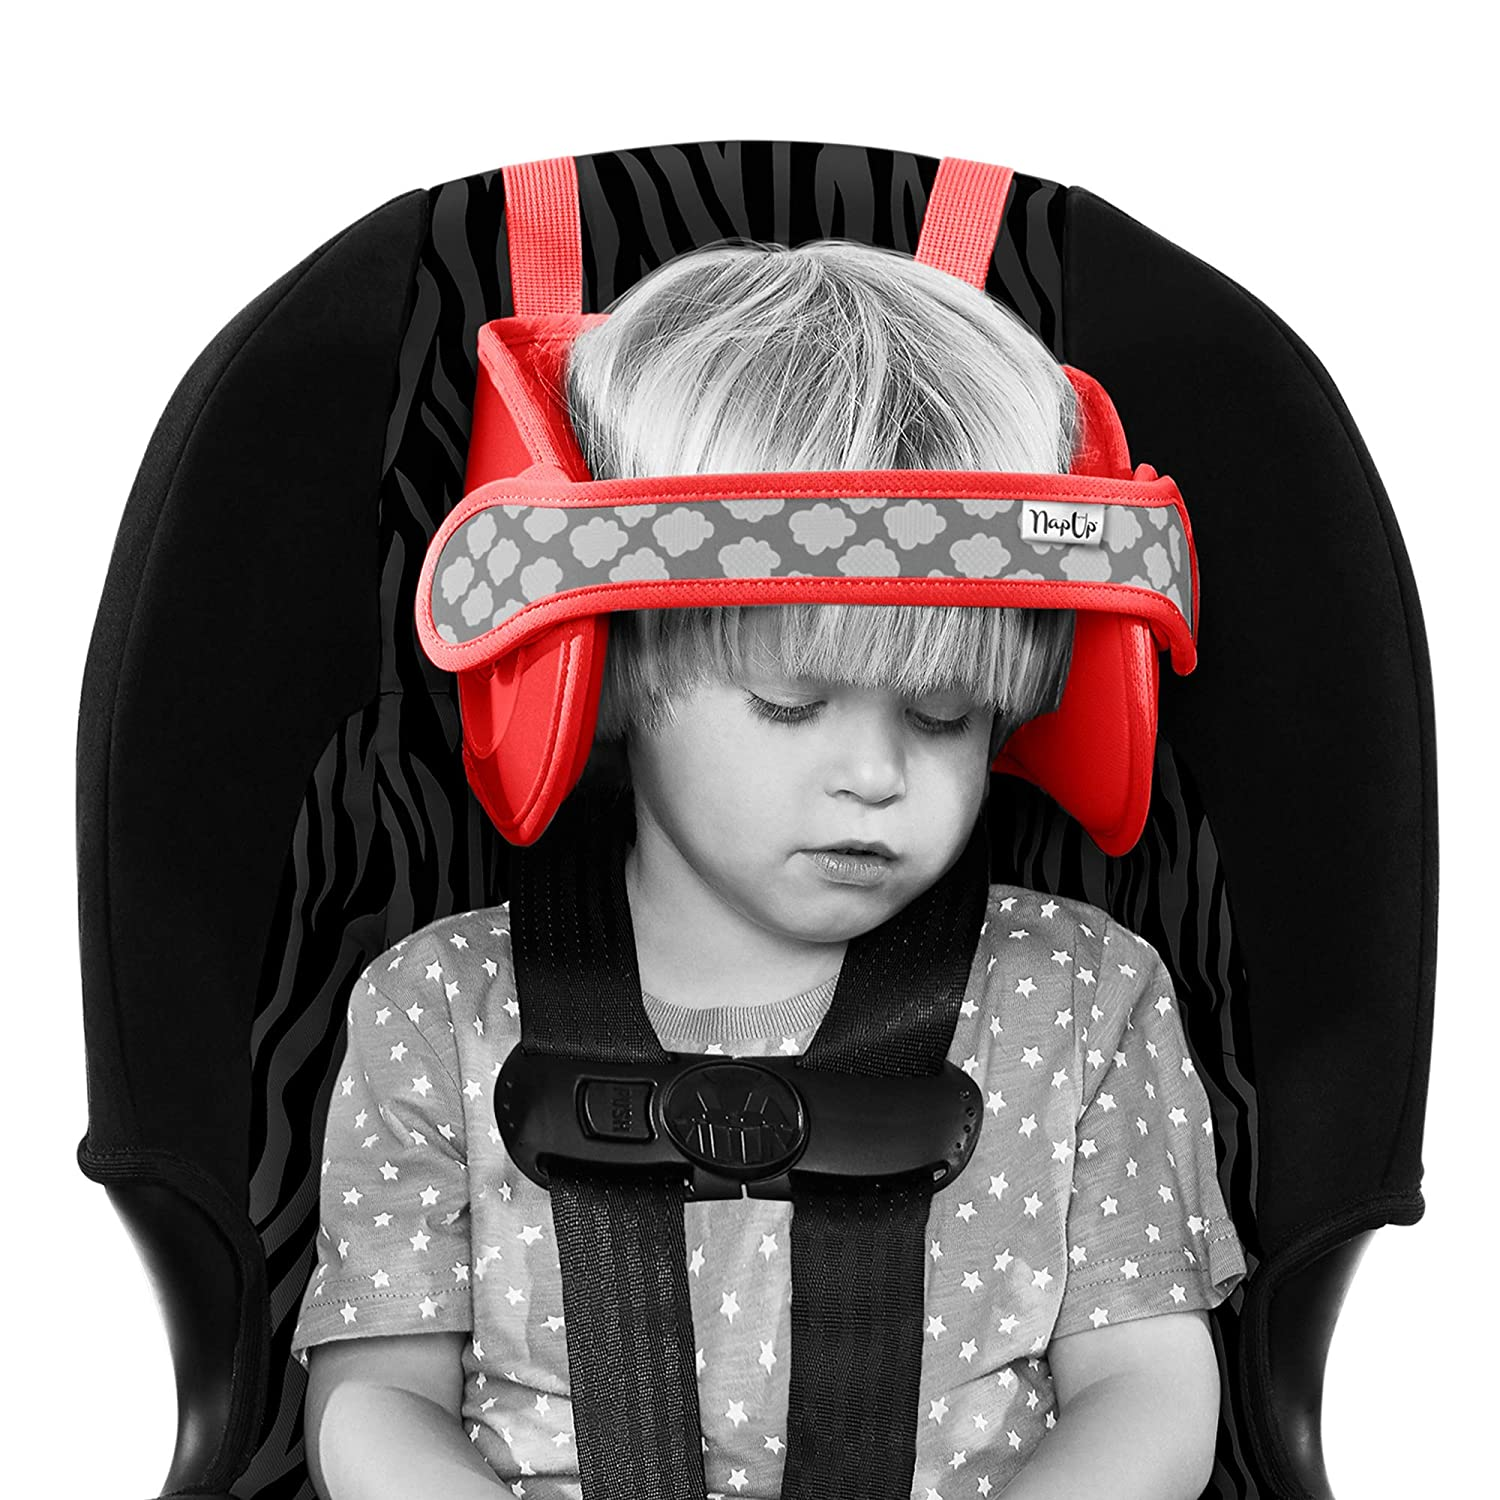 NapUp Child Car Seat Head Support - A Comfortable Safe Sleep Solution (Red). NAPUP-RJ